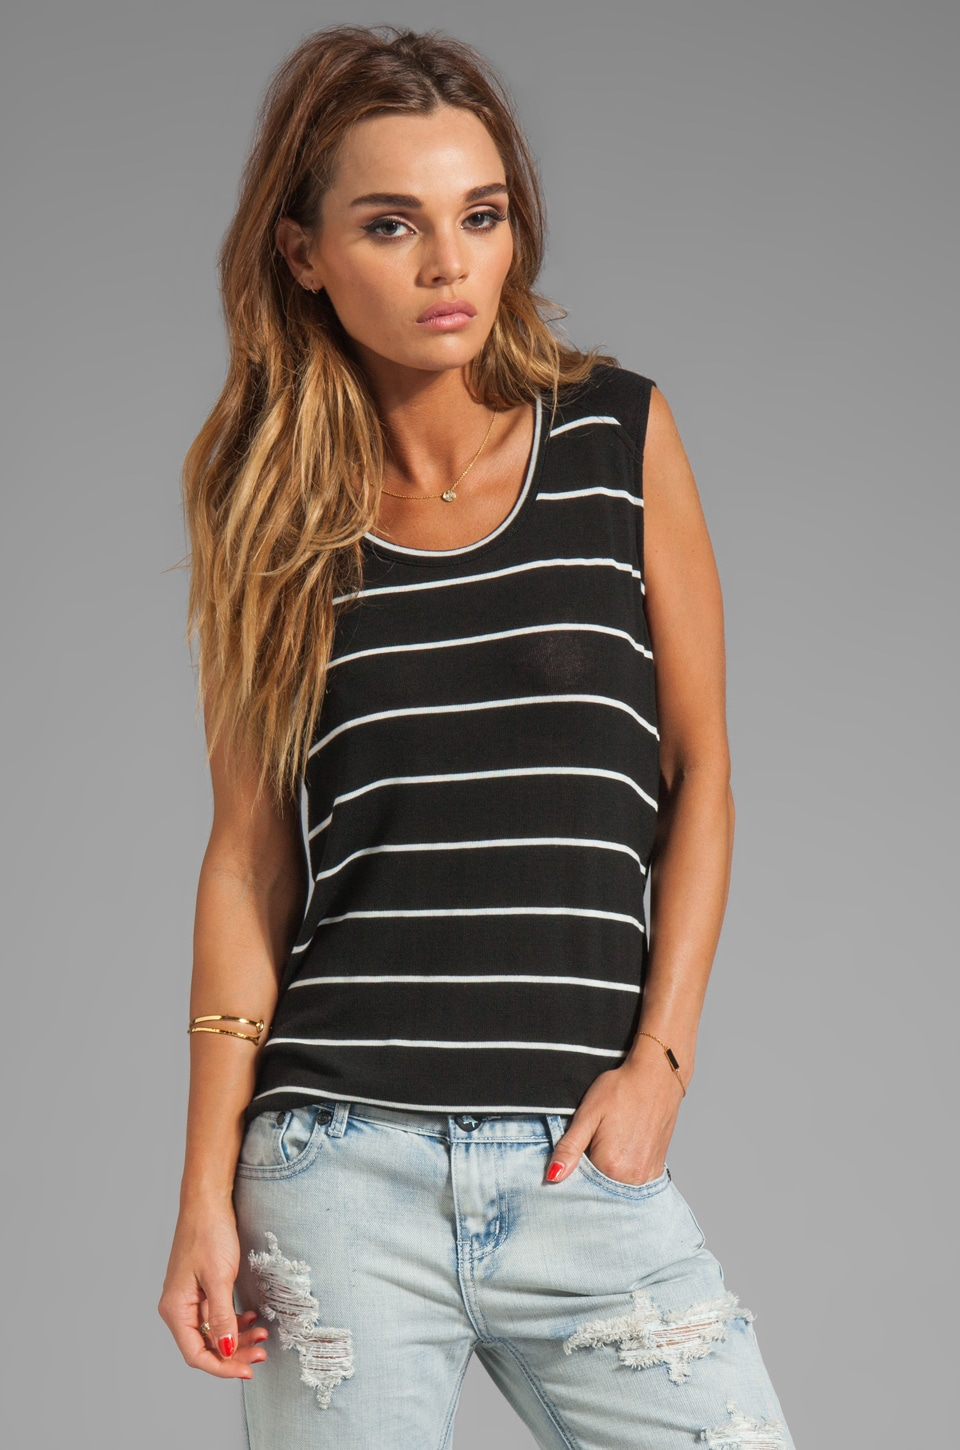 Whetherly Lizzie Stripe Top in Positive